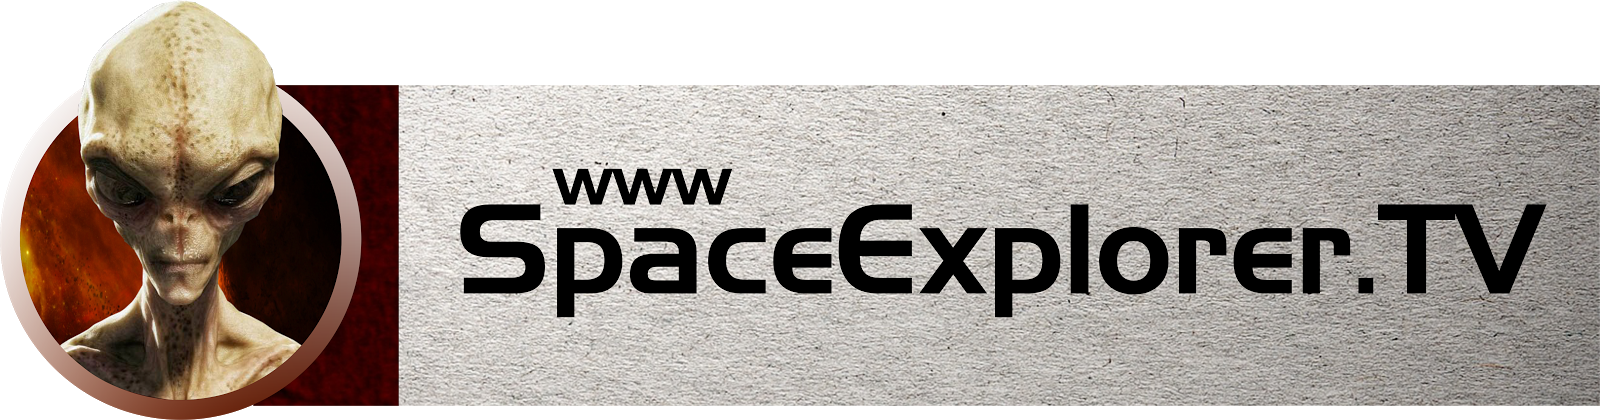 SpaceExplorer.TV